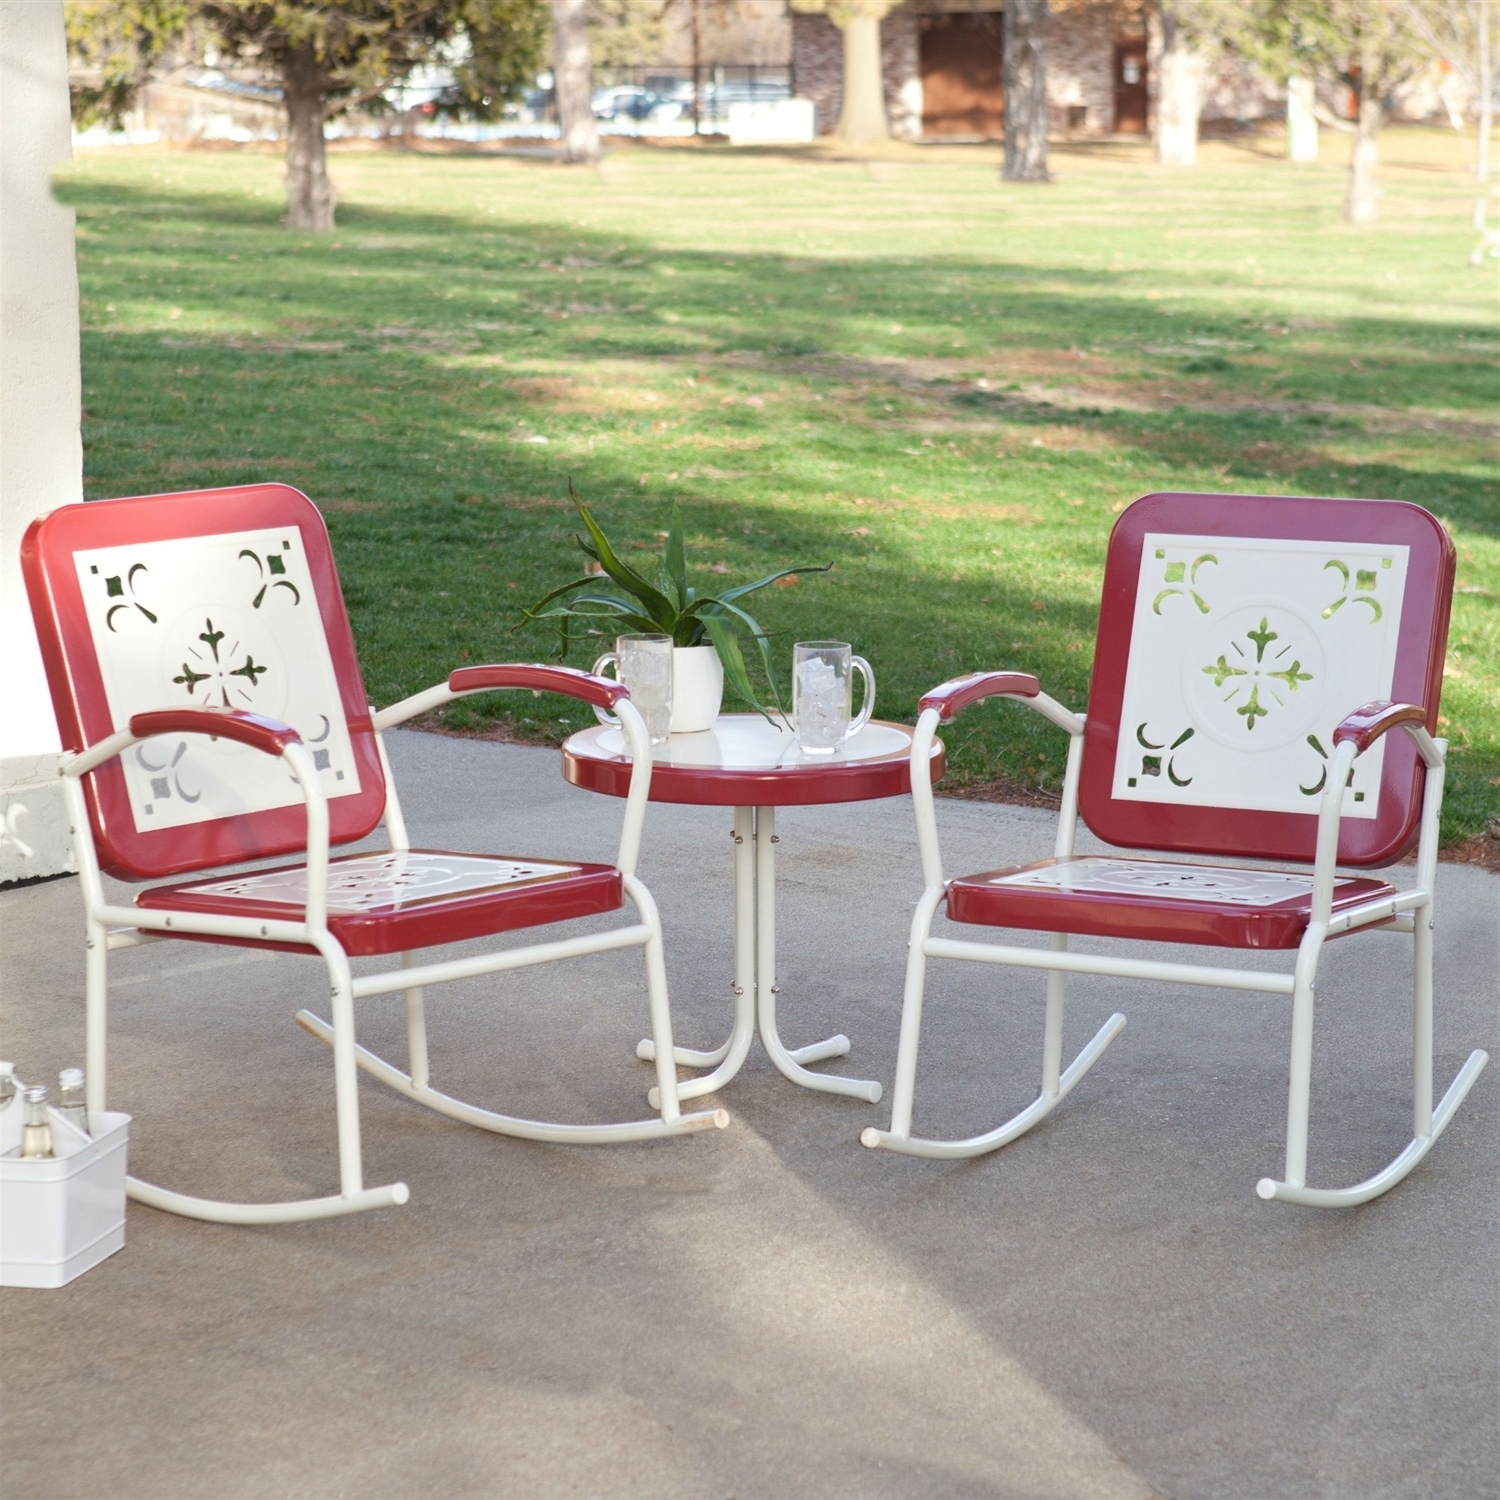 Patio Rocking Chairs And Table For Preferred Cherry Red Retro Patio 3 Pc (View 10 of 20)